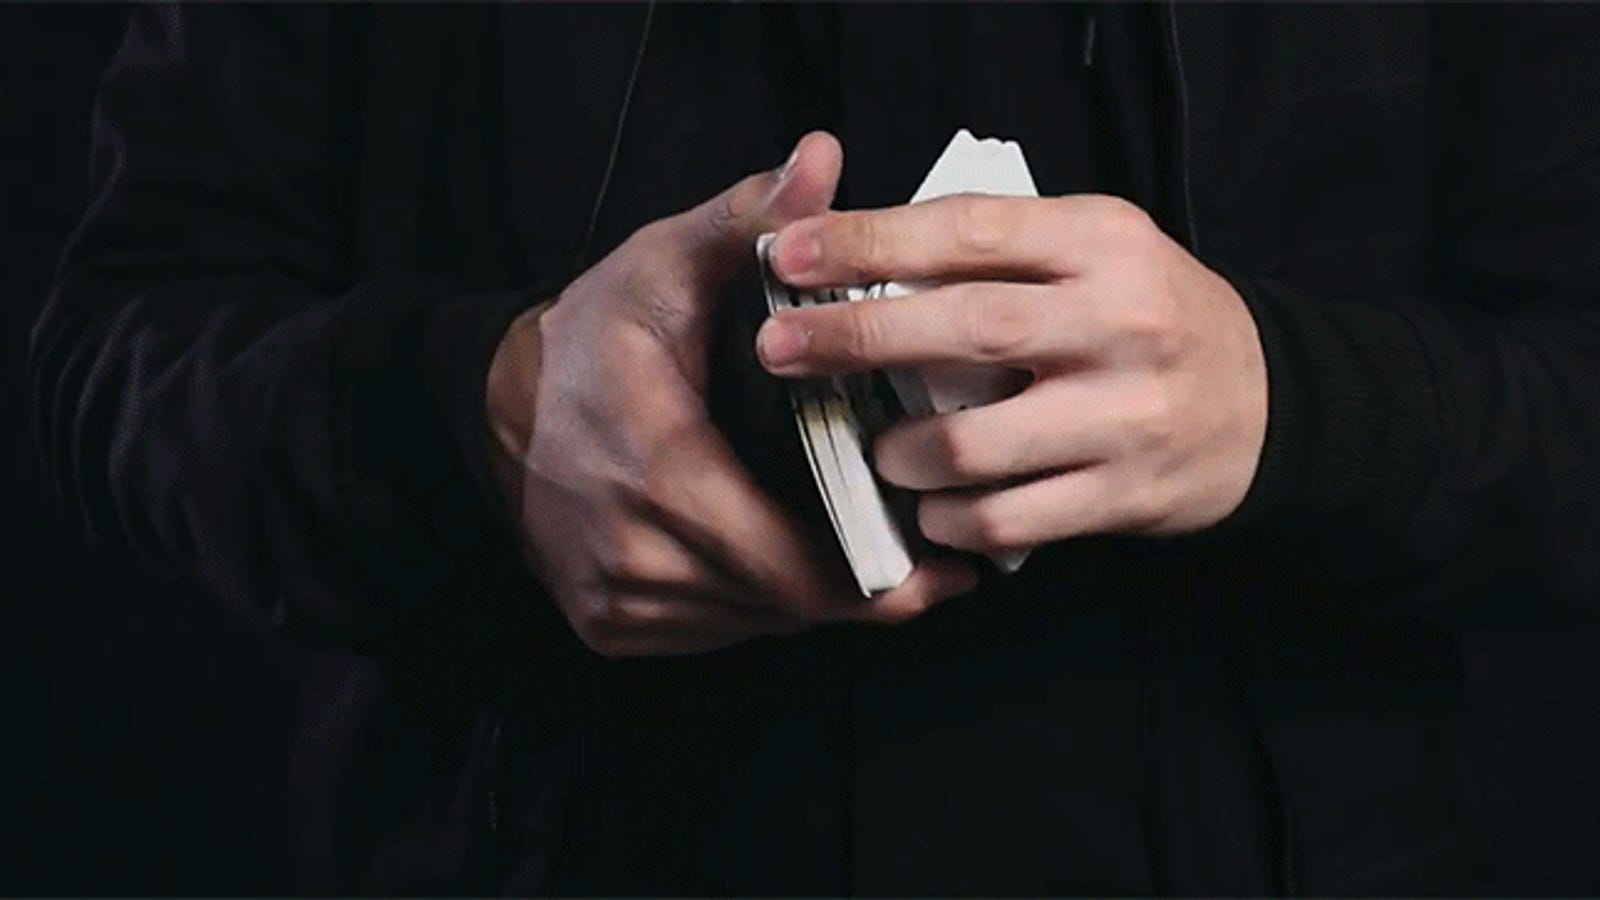 Incredible Card Flourishes Look Even Better in Slow Motion